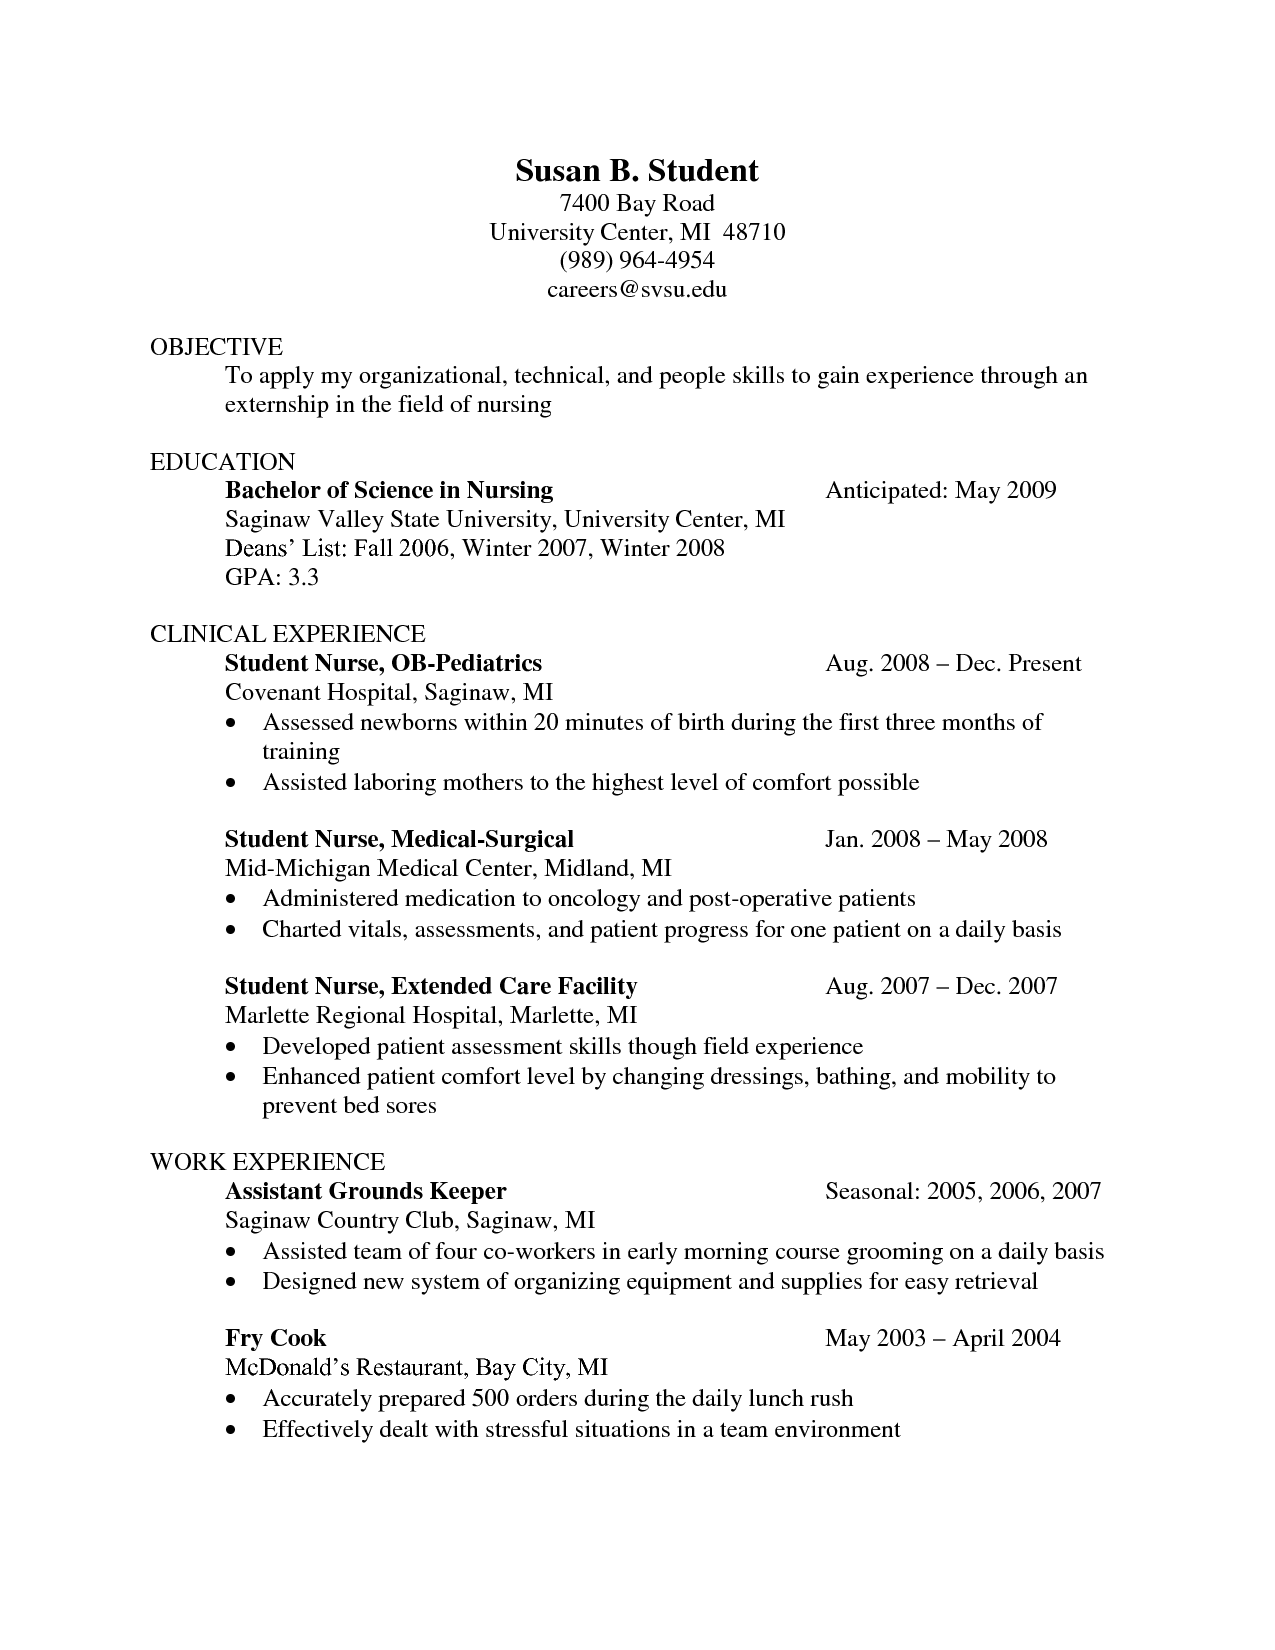 Oncology Nurse Resume Templates   Http://www.resumecareer.info/oncology  Nursing Student Resume Objective